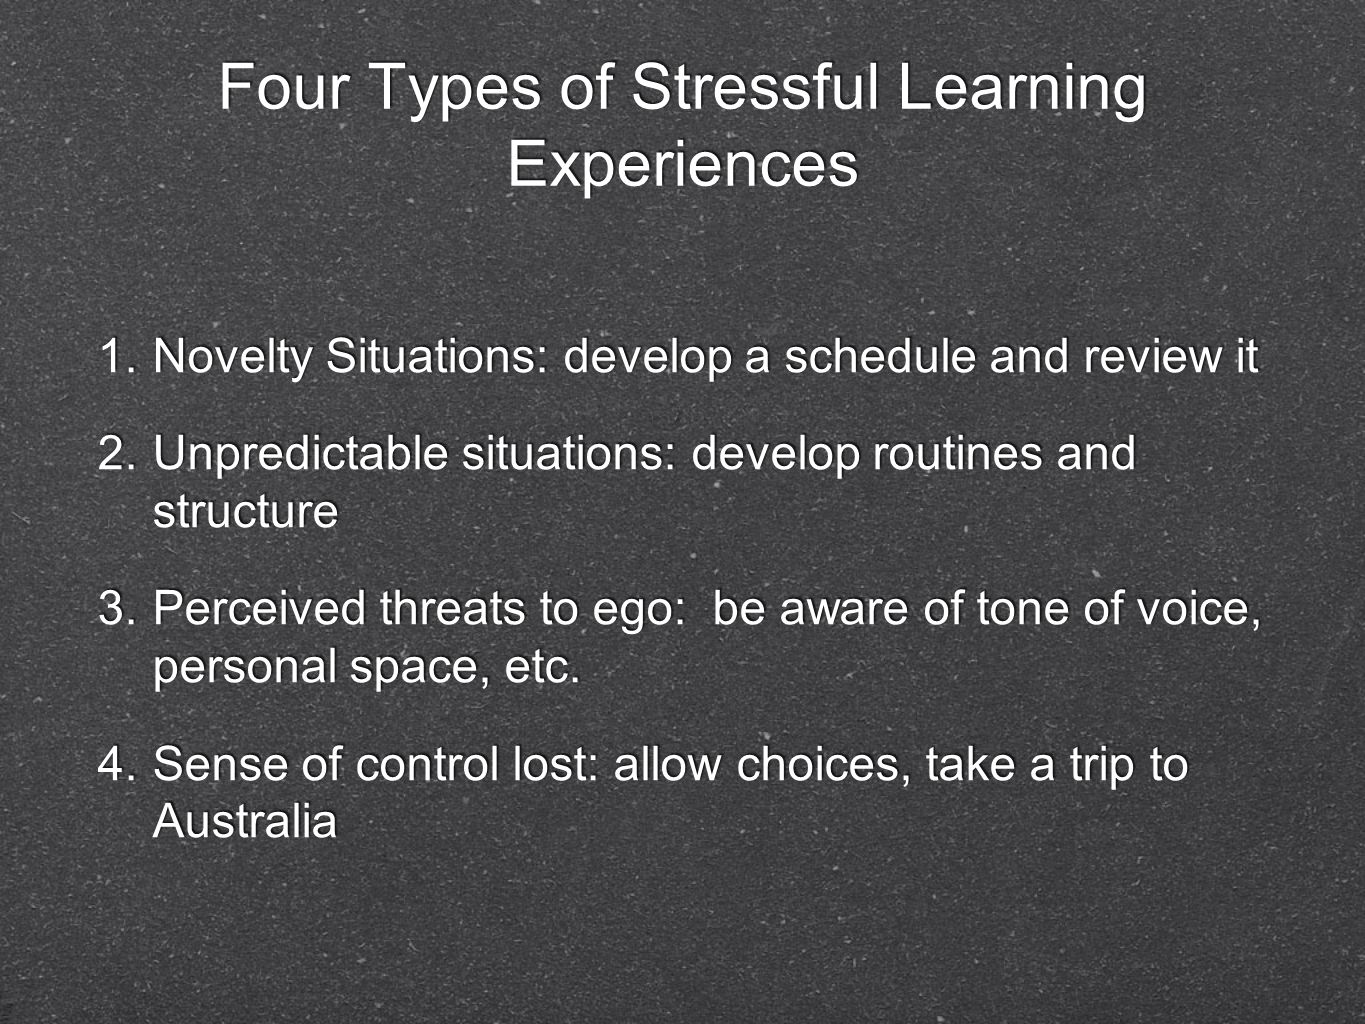 Four Types of Stressful Learning Experiences 1. Novelty Situations: develop a schedule and review it 2. Unpredictable situations: develop routines and